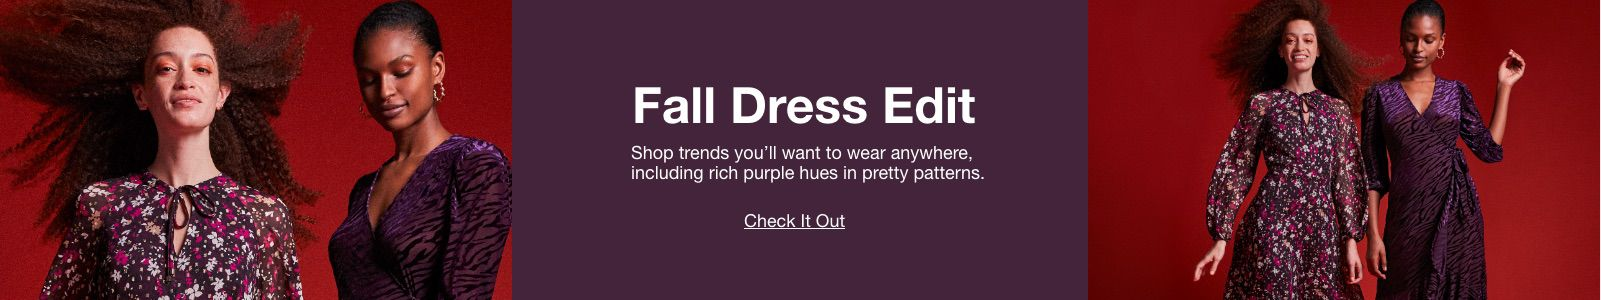 Fall Dress Edit